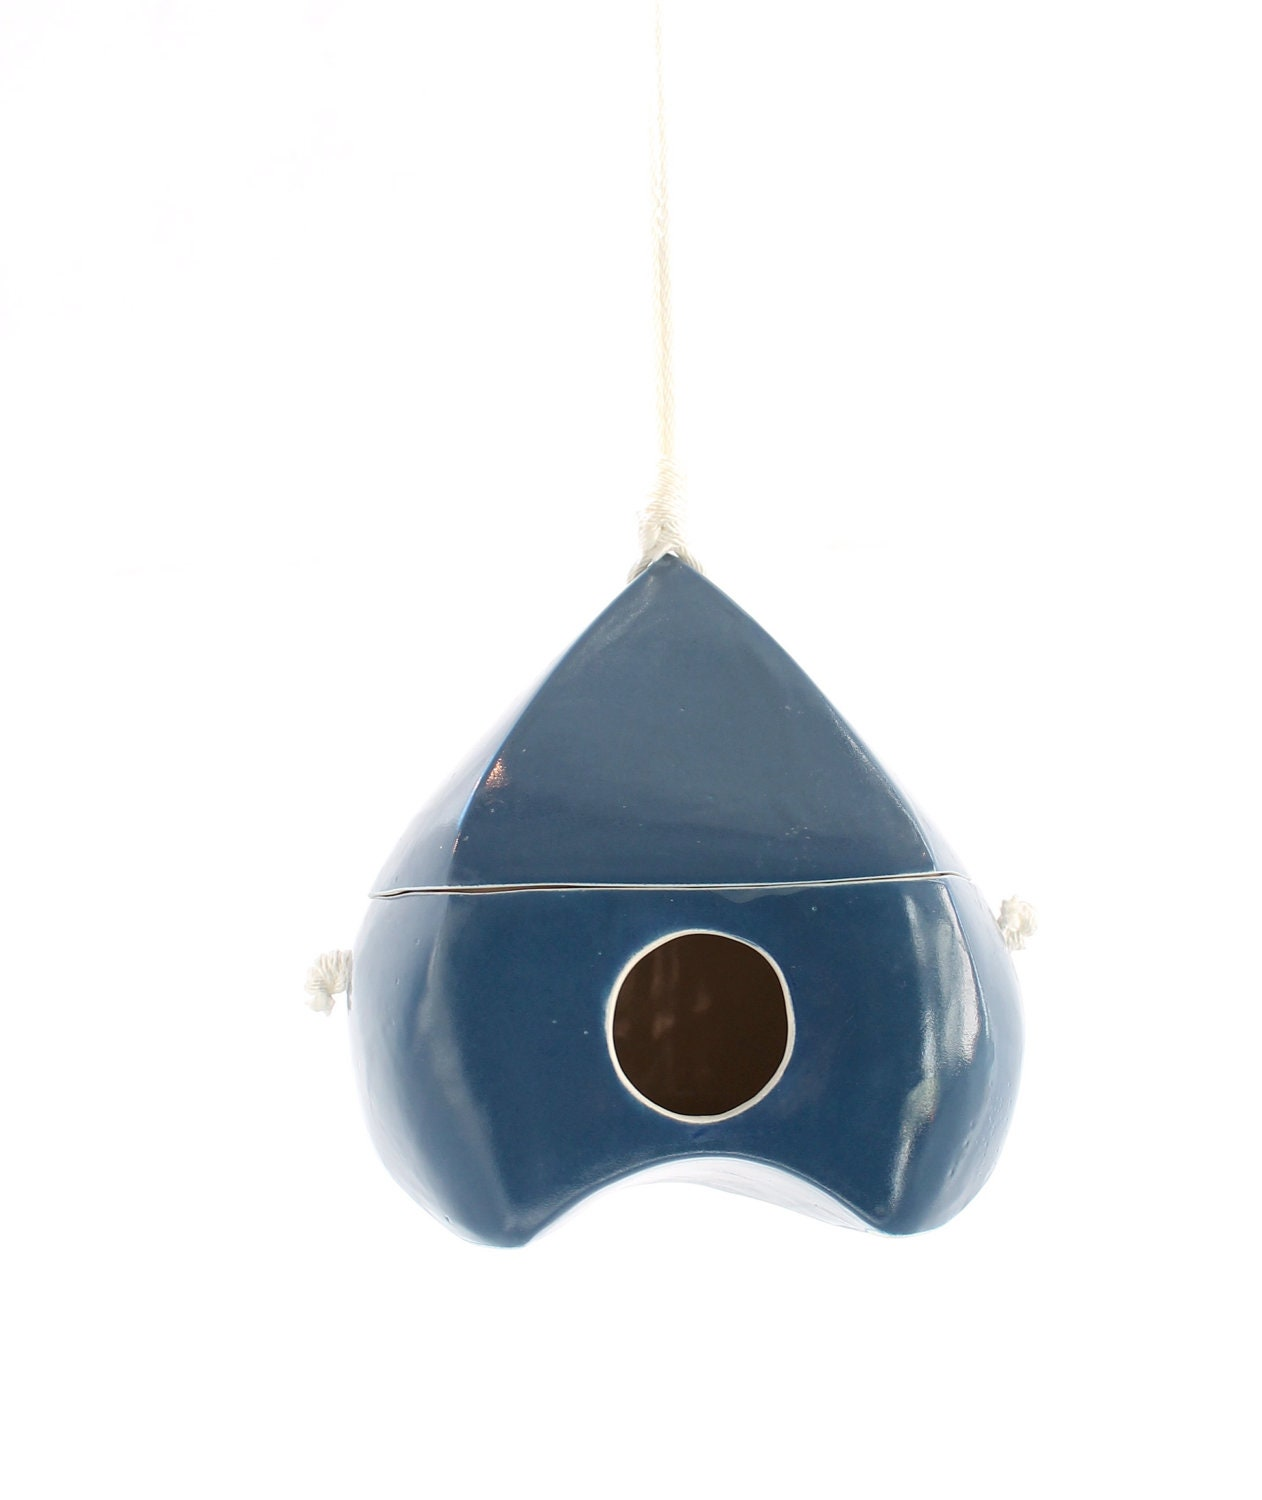 Navy Blue Porcelain Bird House - LandMstudio